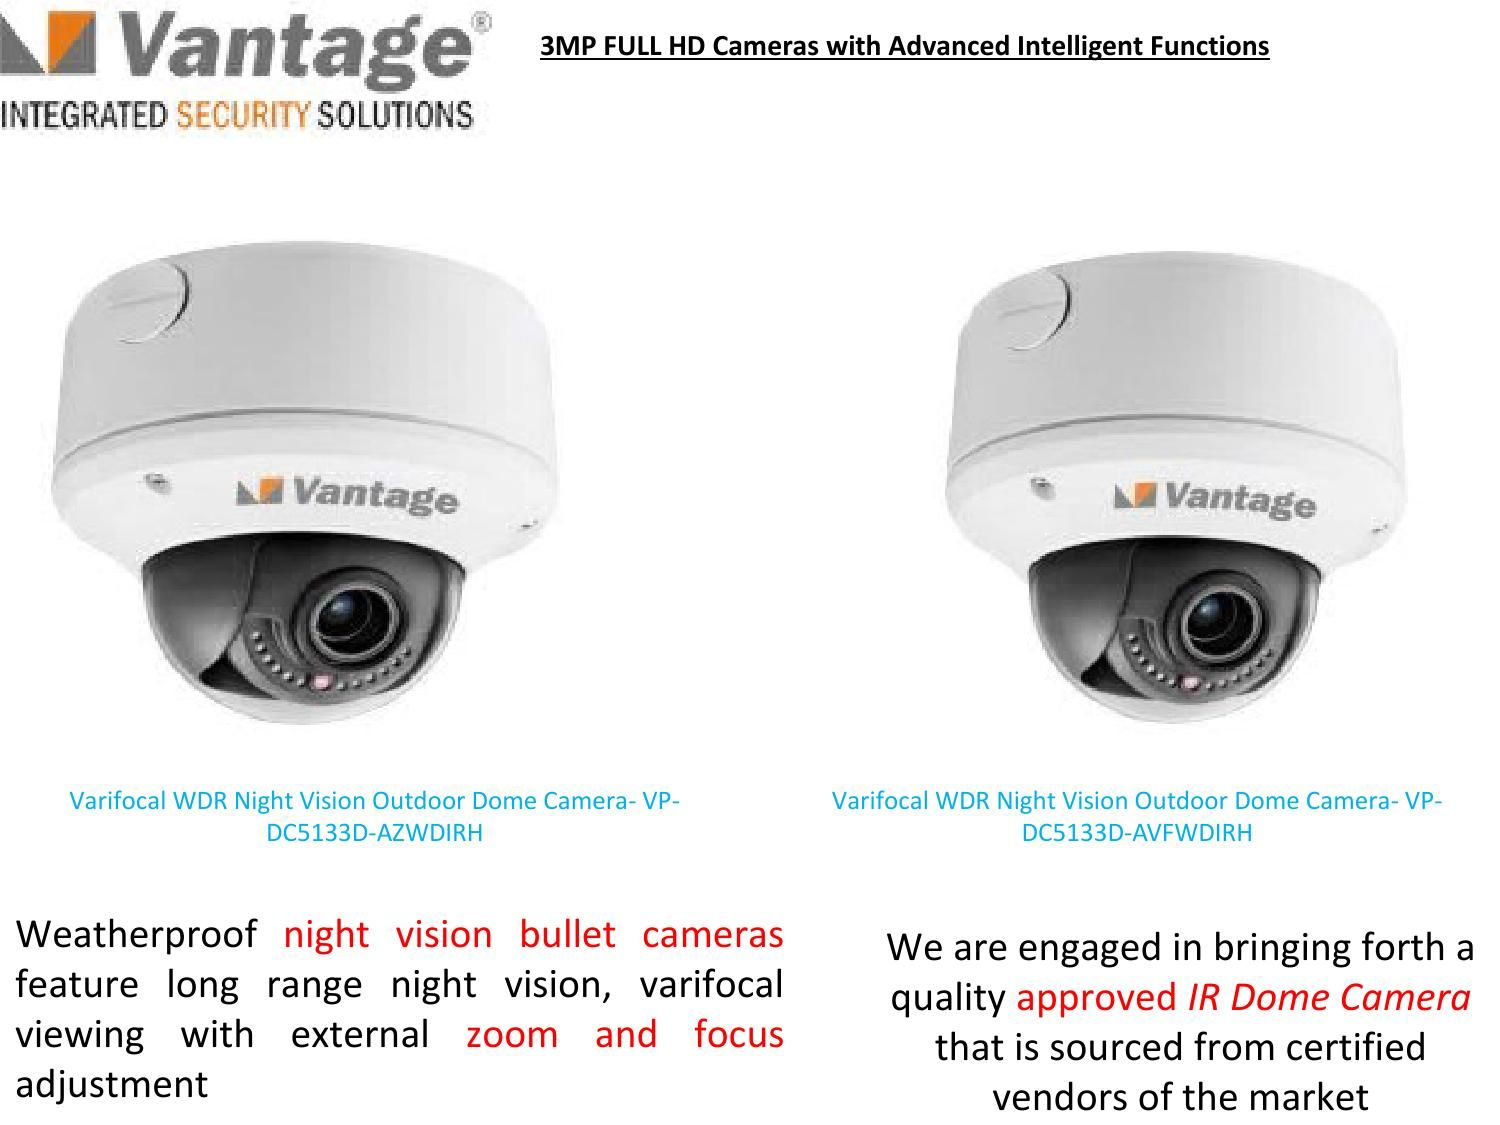 Camera De Surveillance Exterieur Sans Fil Axis Ip Cameras 3mp Full Hd Cameras With Advanced Intelligent Functions